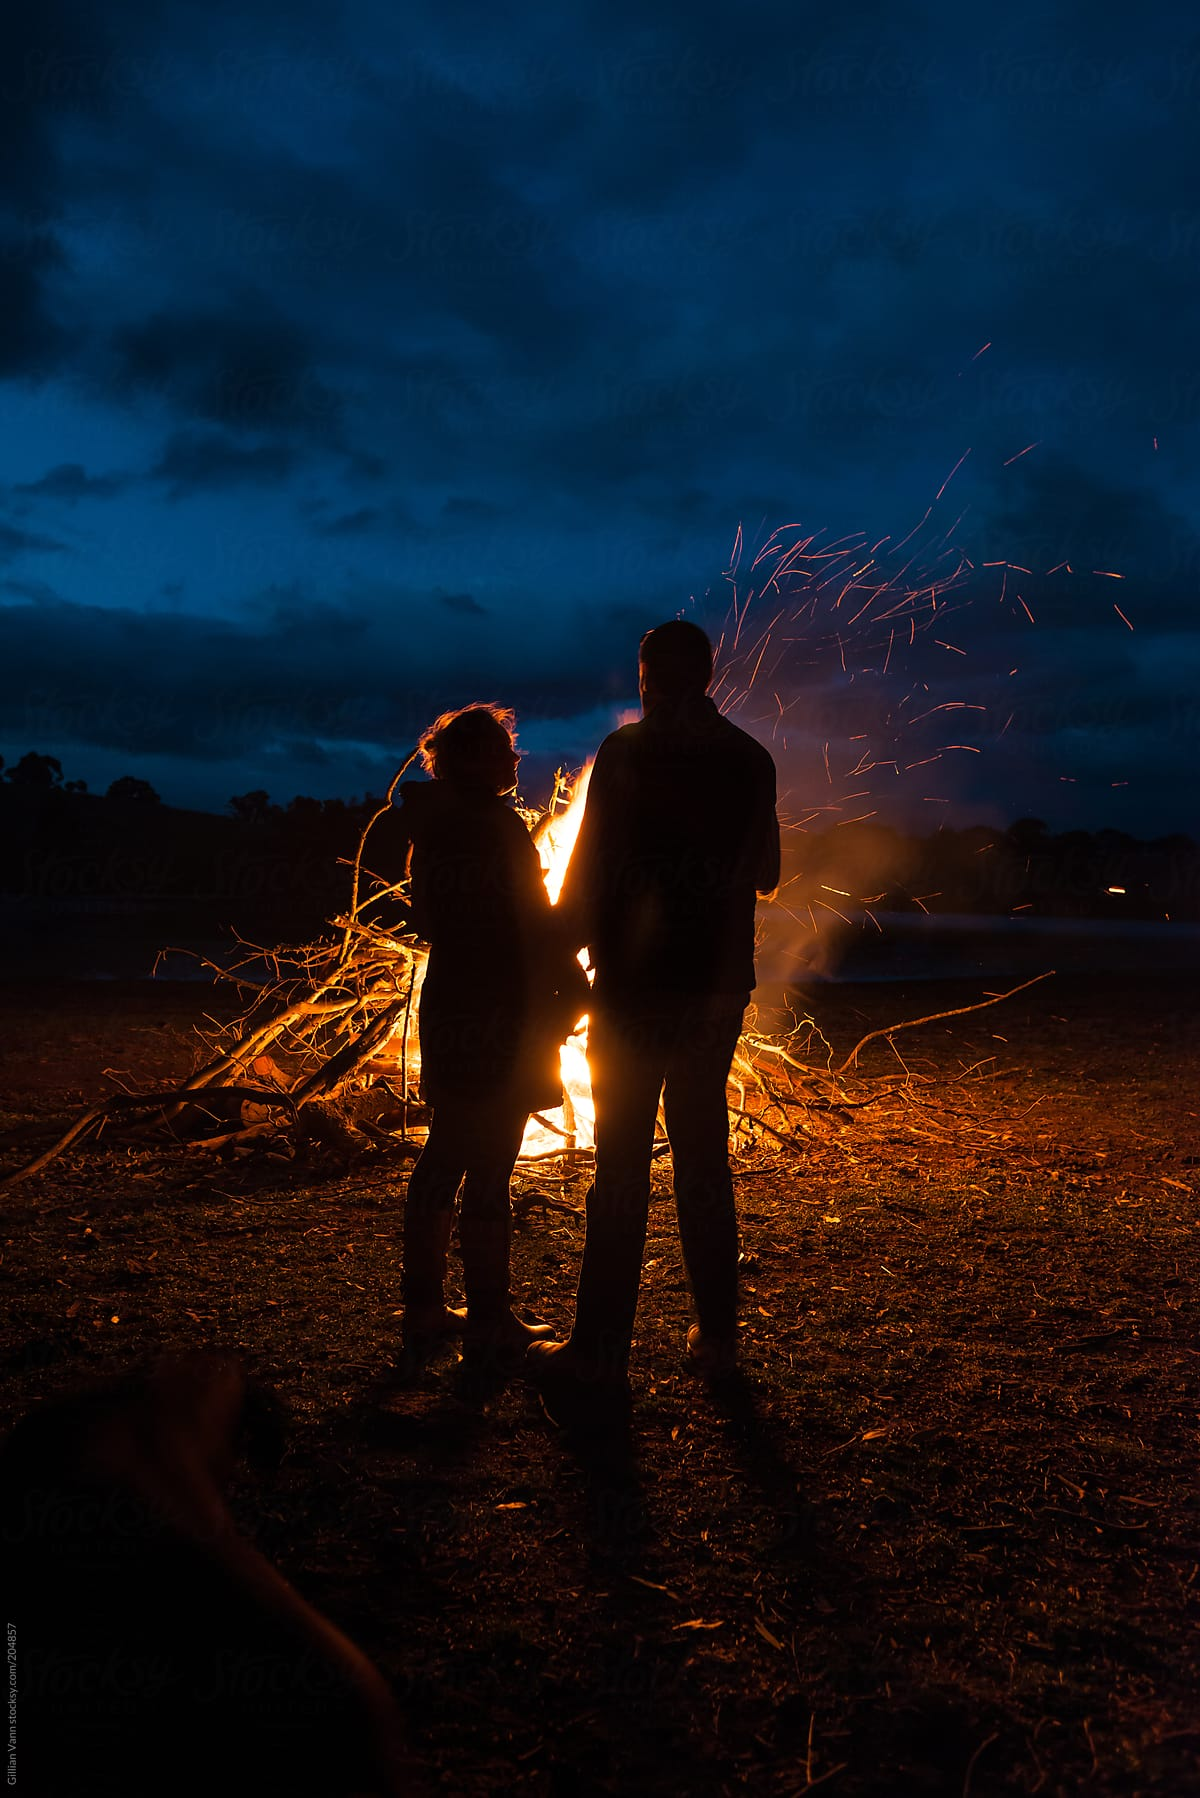 a couple silhouette by the campfire stocksy united